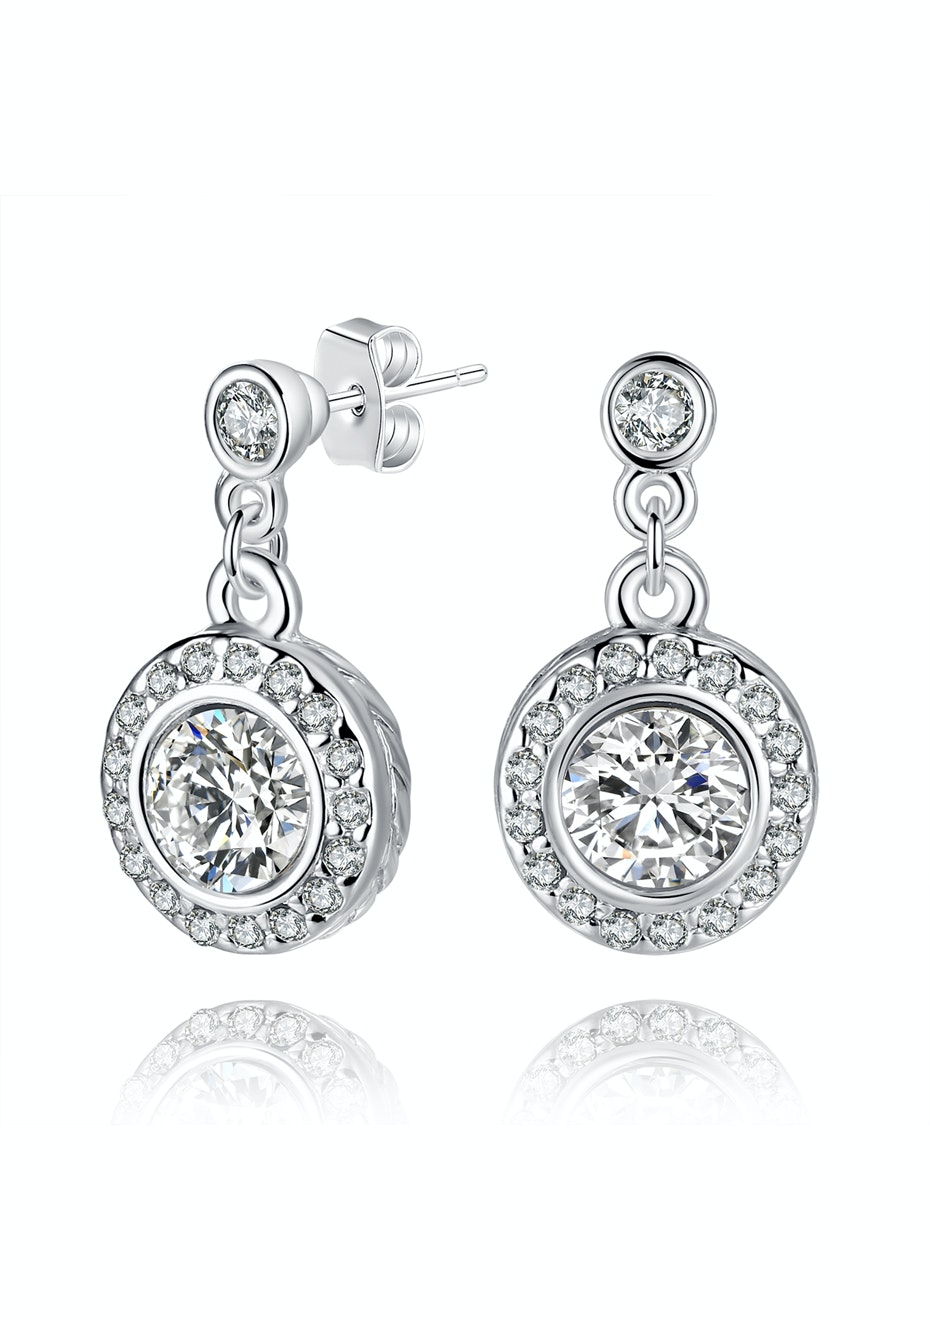 Earrings Embellished with Crystals from Swarovski